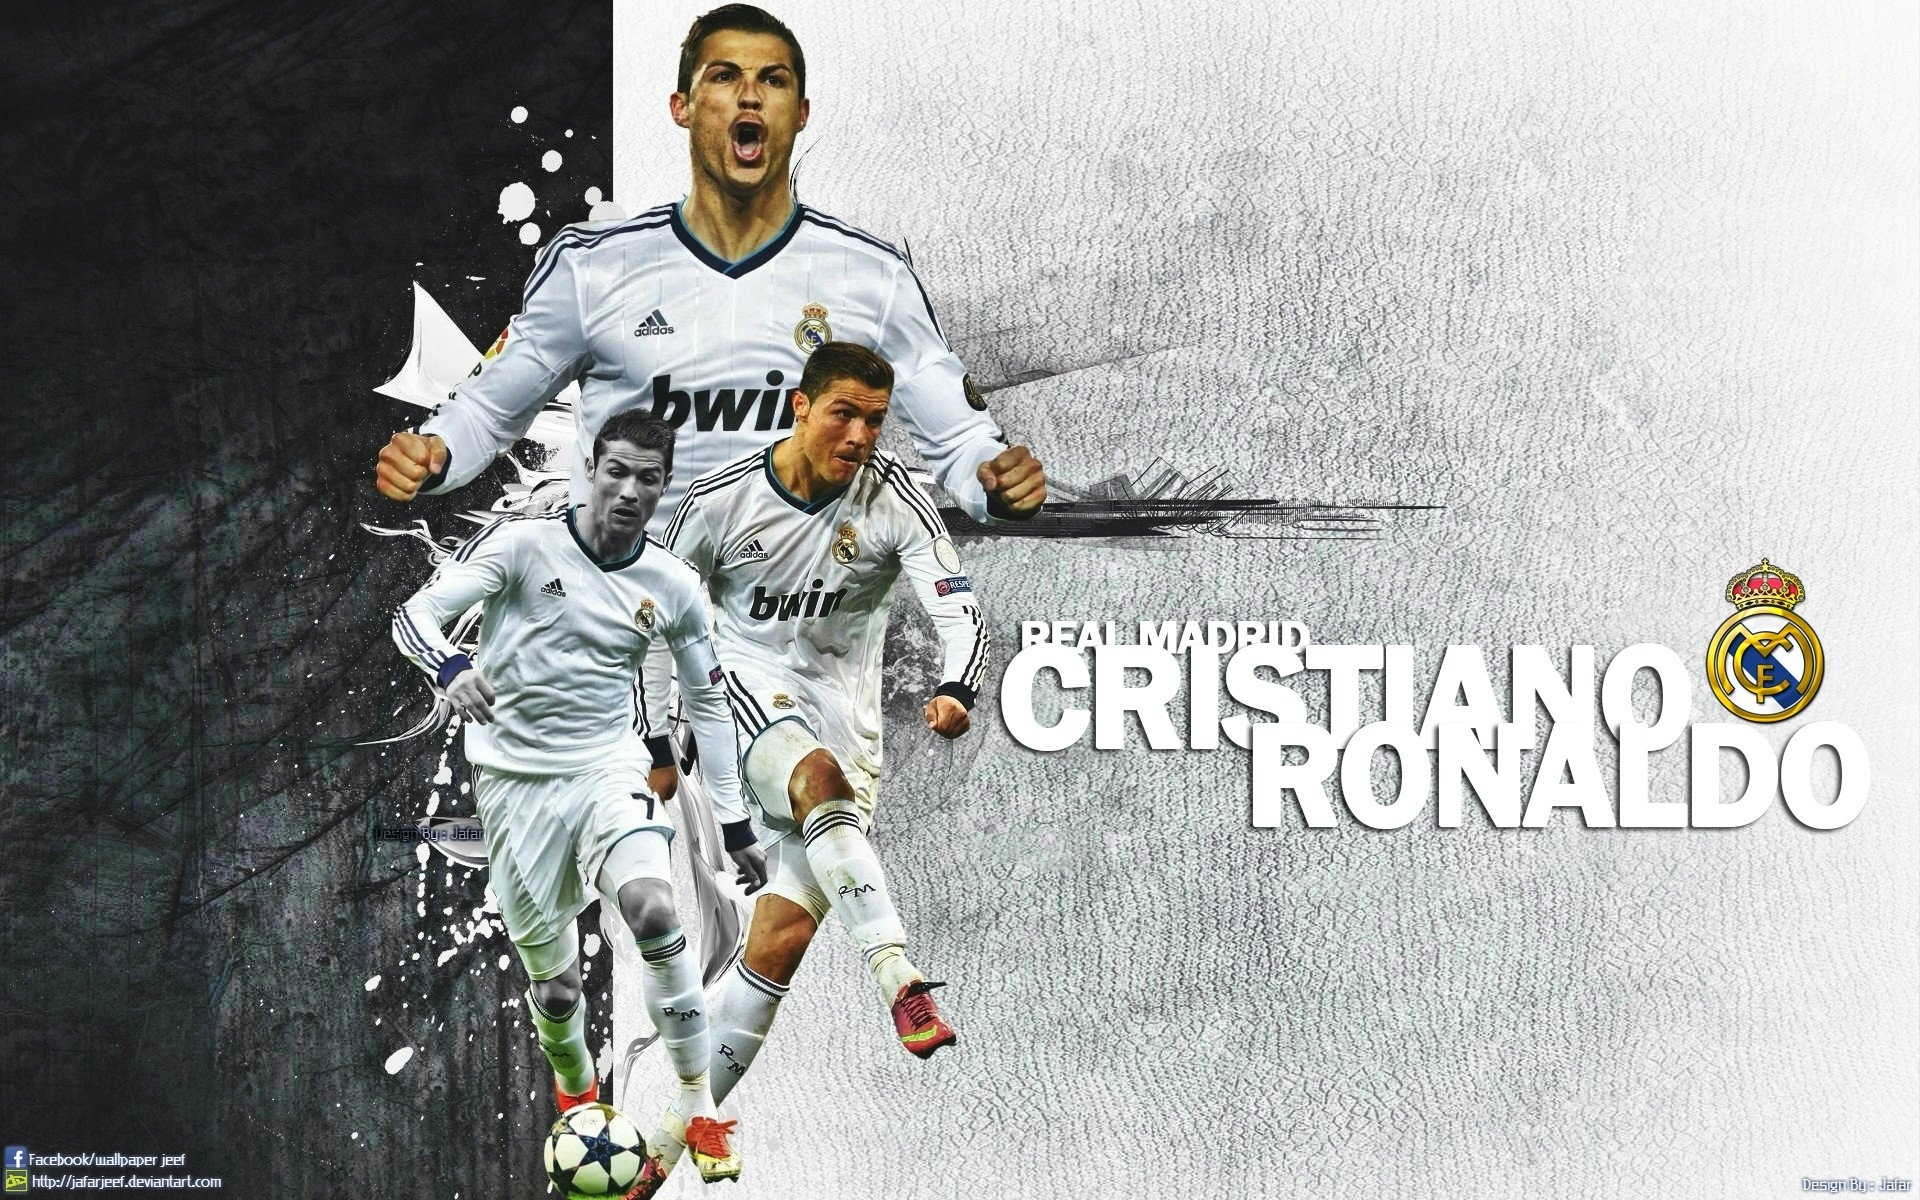 cristiano ronaldo wallpapers 1080p ~ desktop wallpaper box